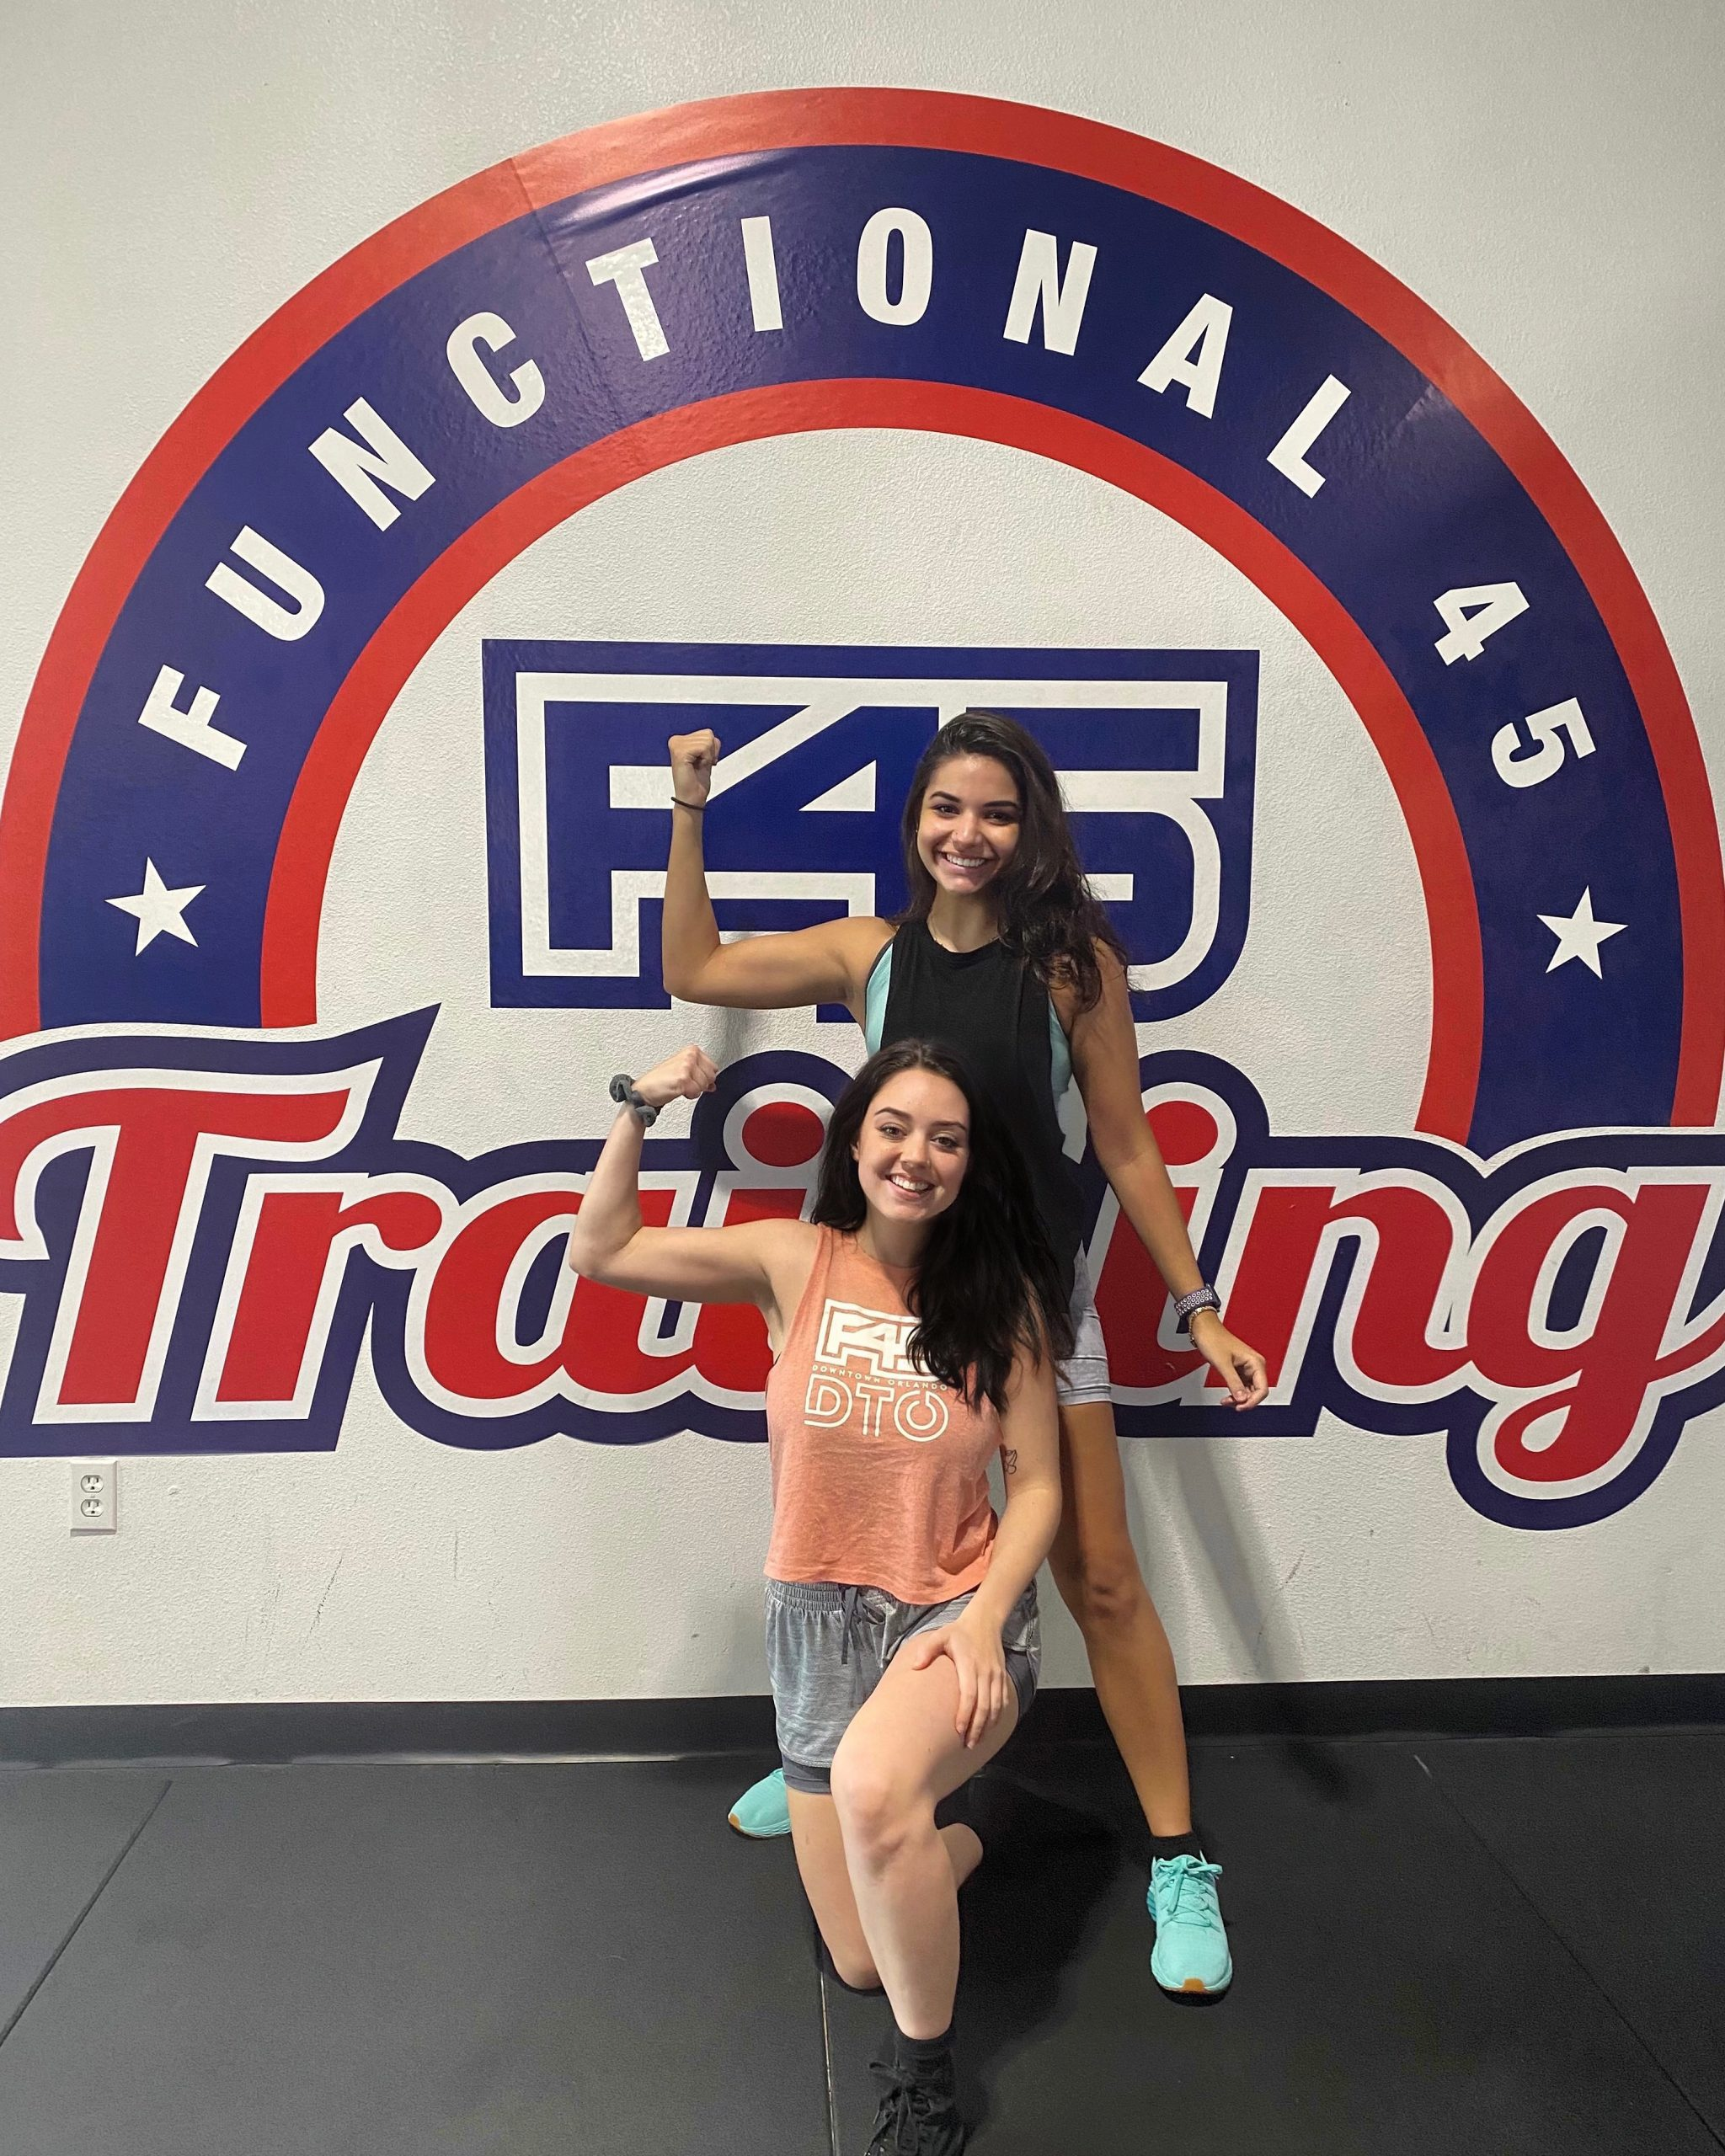 Hannah and friends like to train!